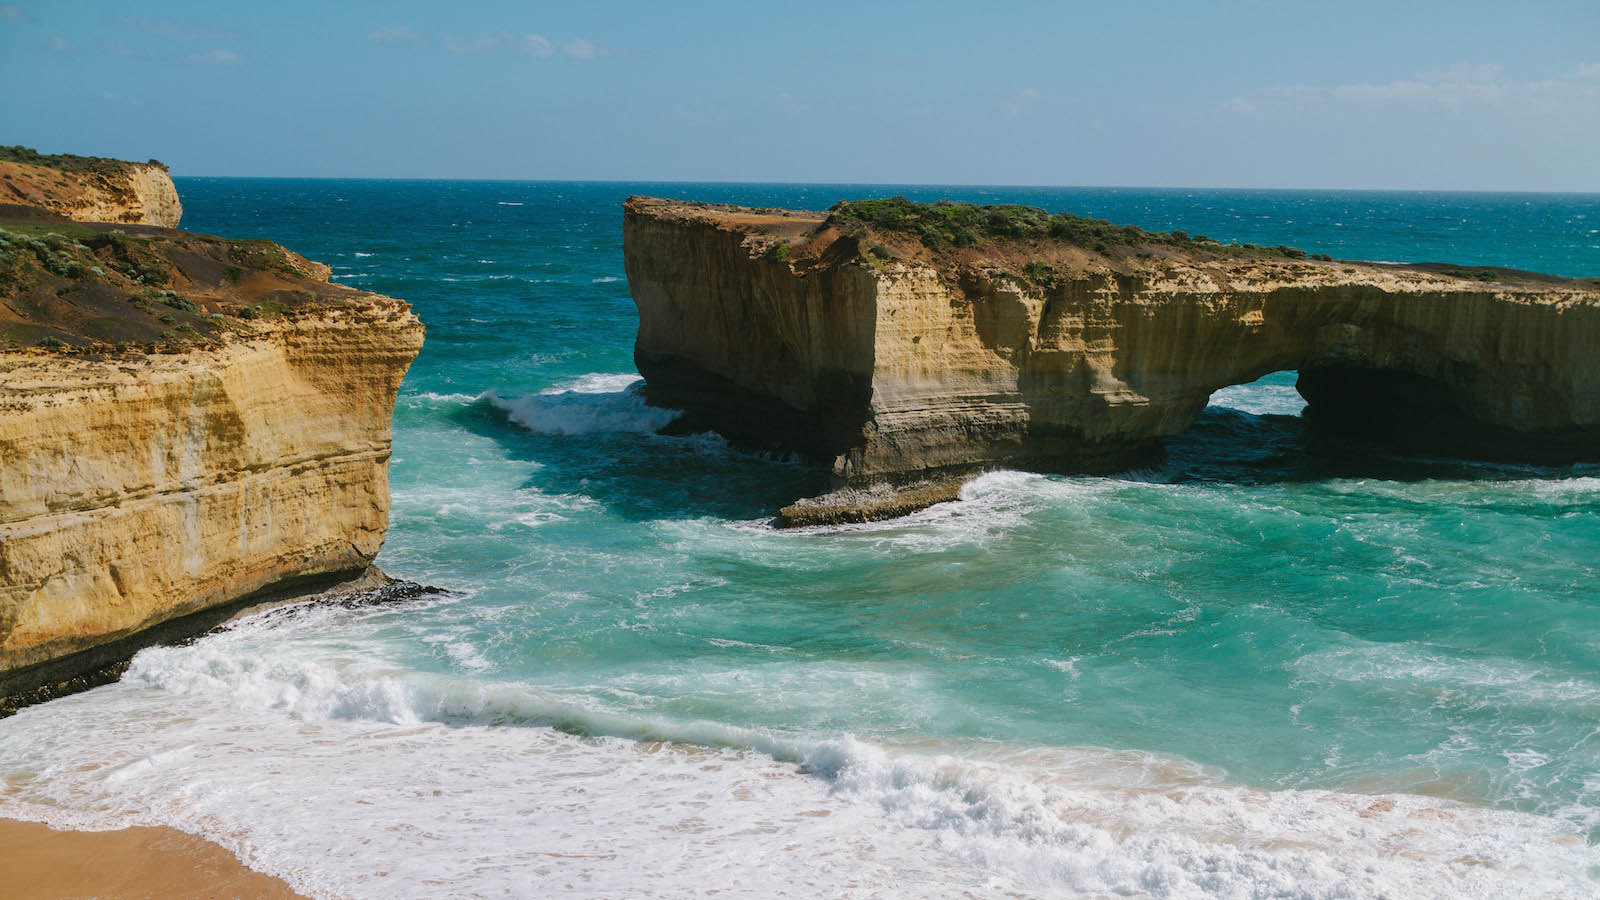 Loch Ard Gorge, Great Ocean Road, Victoria, Australia. Photo: Robert Seba